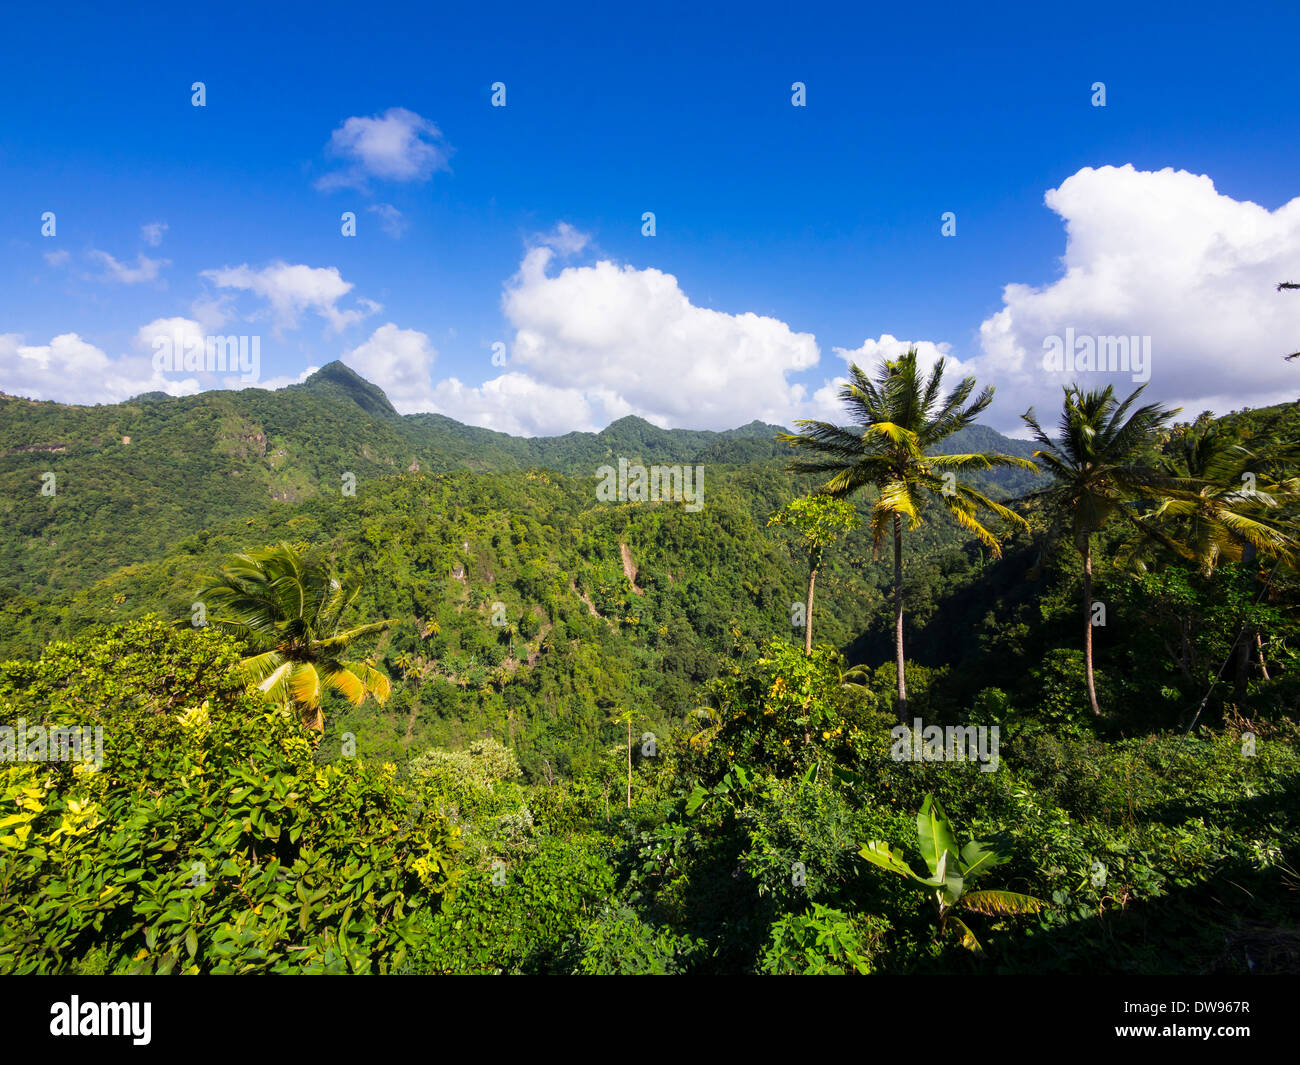 Jungle à Anse La Verdure, Sainte Lucie, Îles du Vent, Petites Antilles Photo Stock